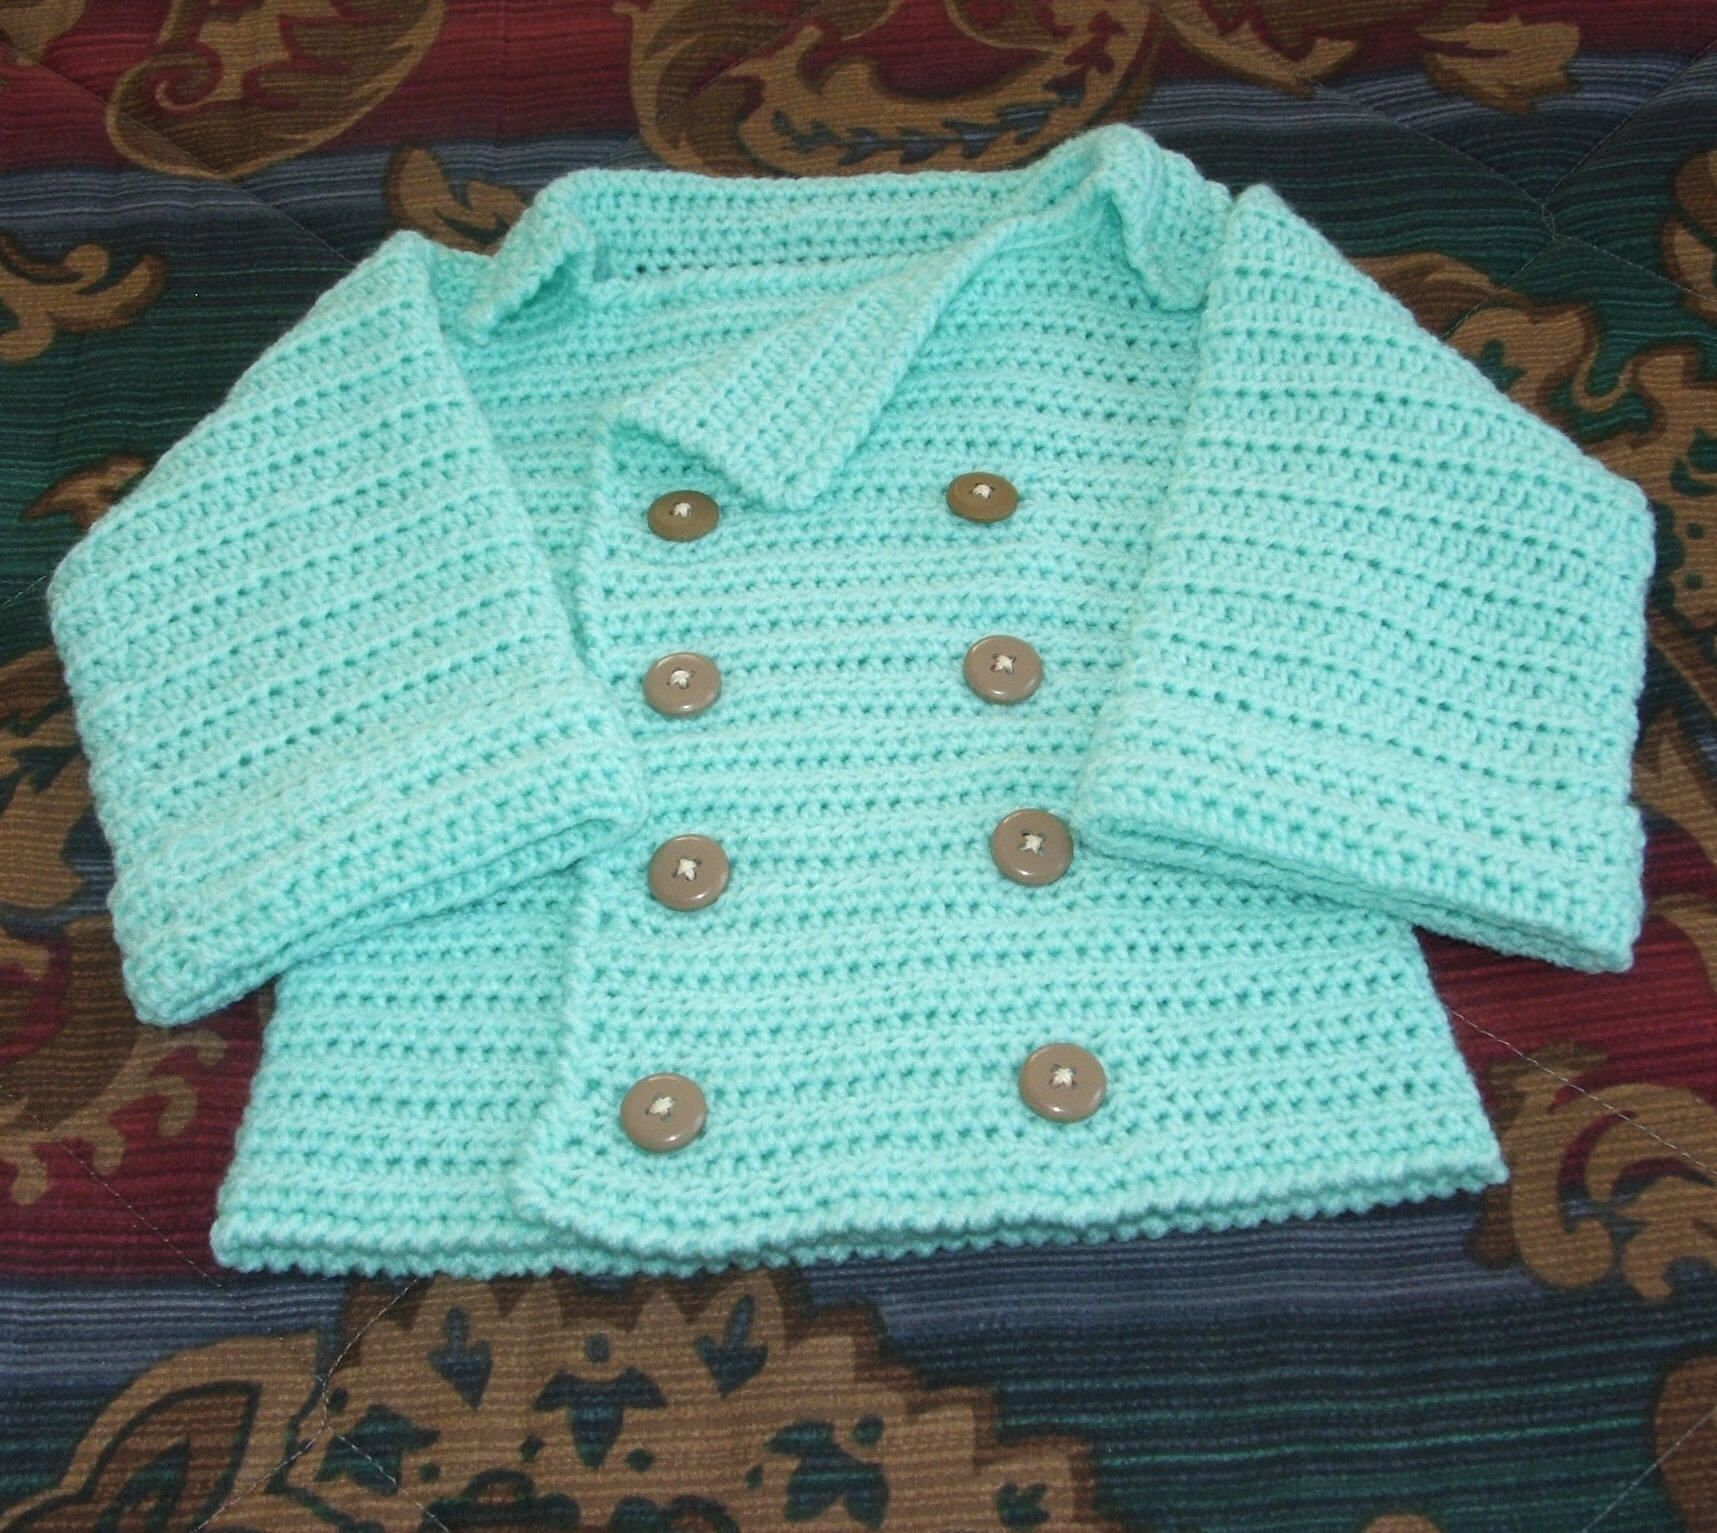 Infant\'s Double Breasted Sweater-Free Crochet Pattern | Ravelry ...